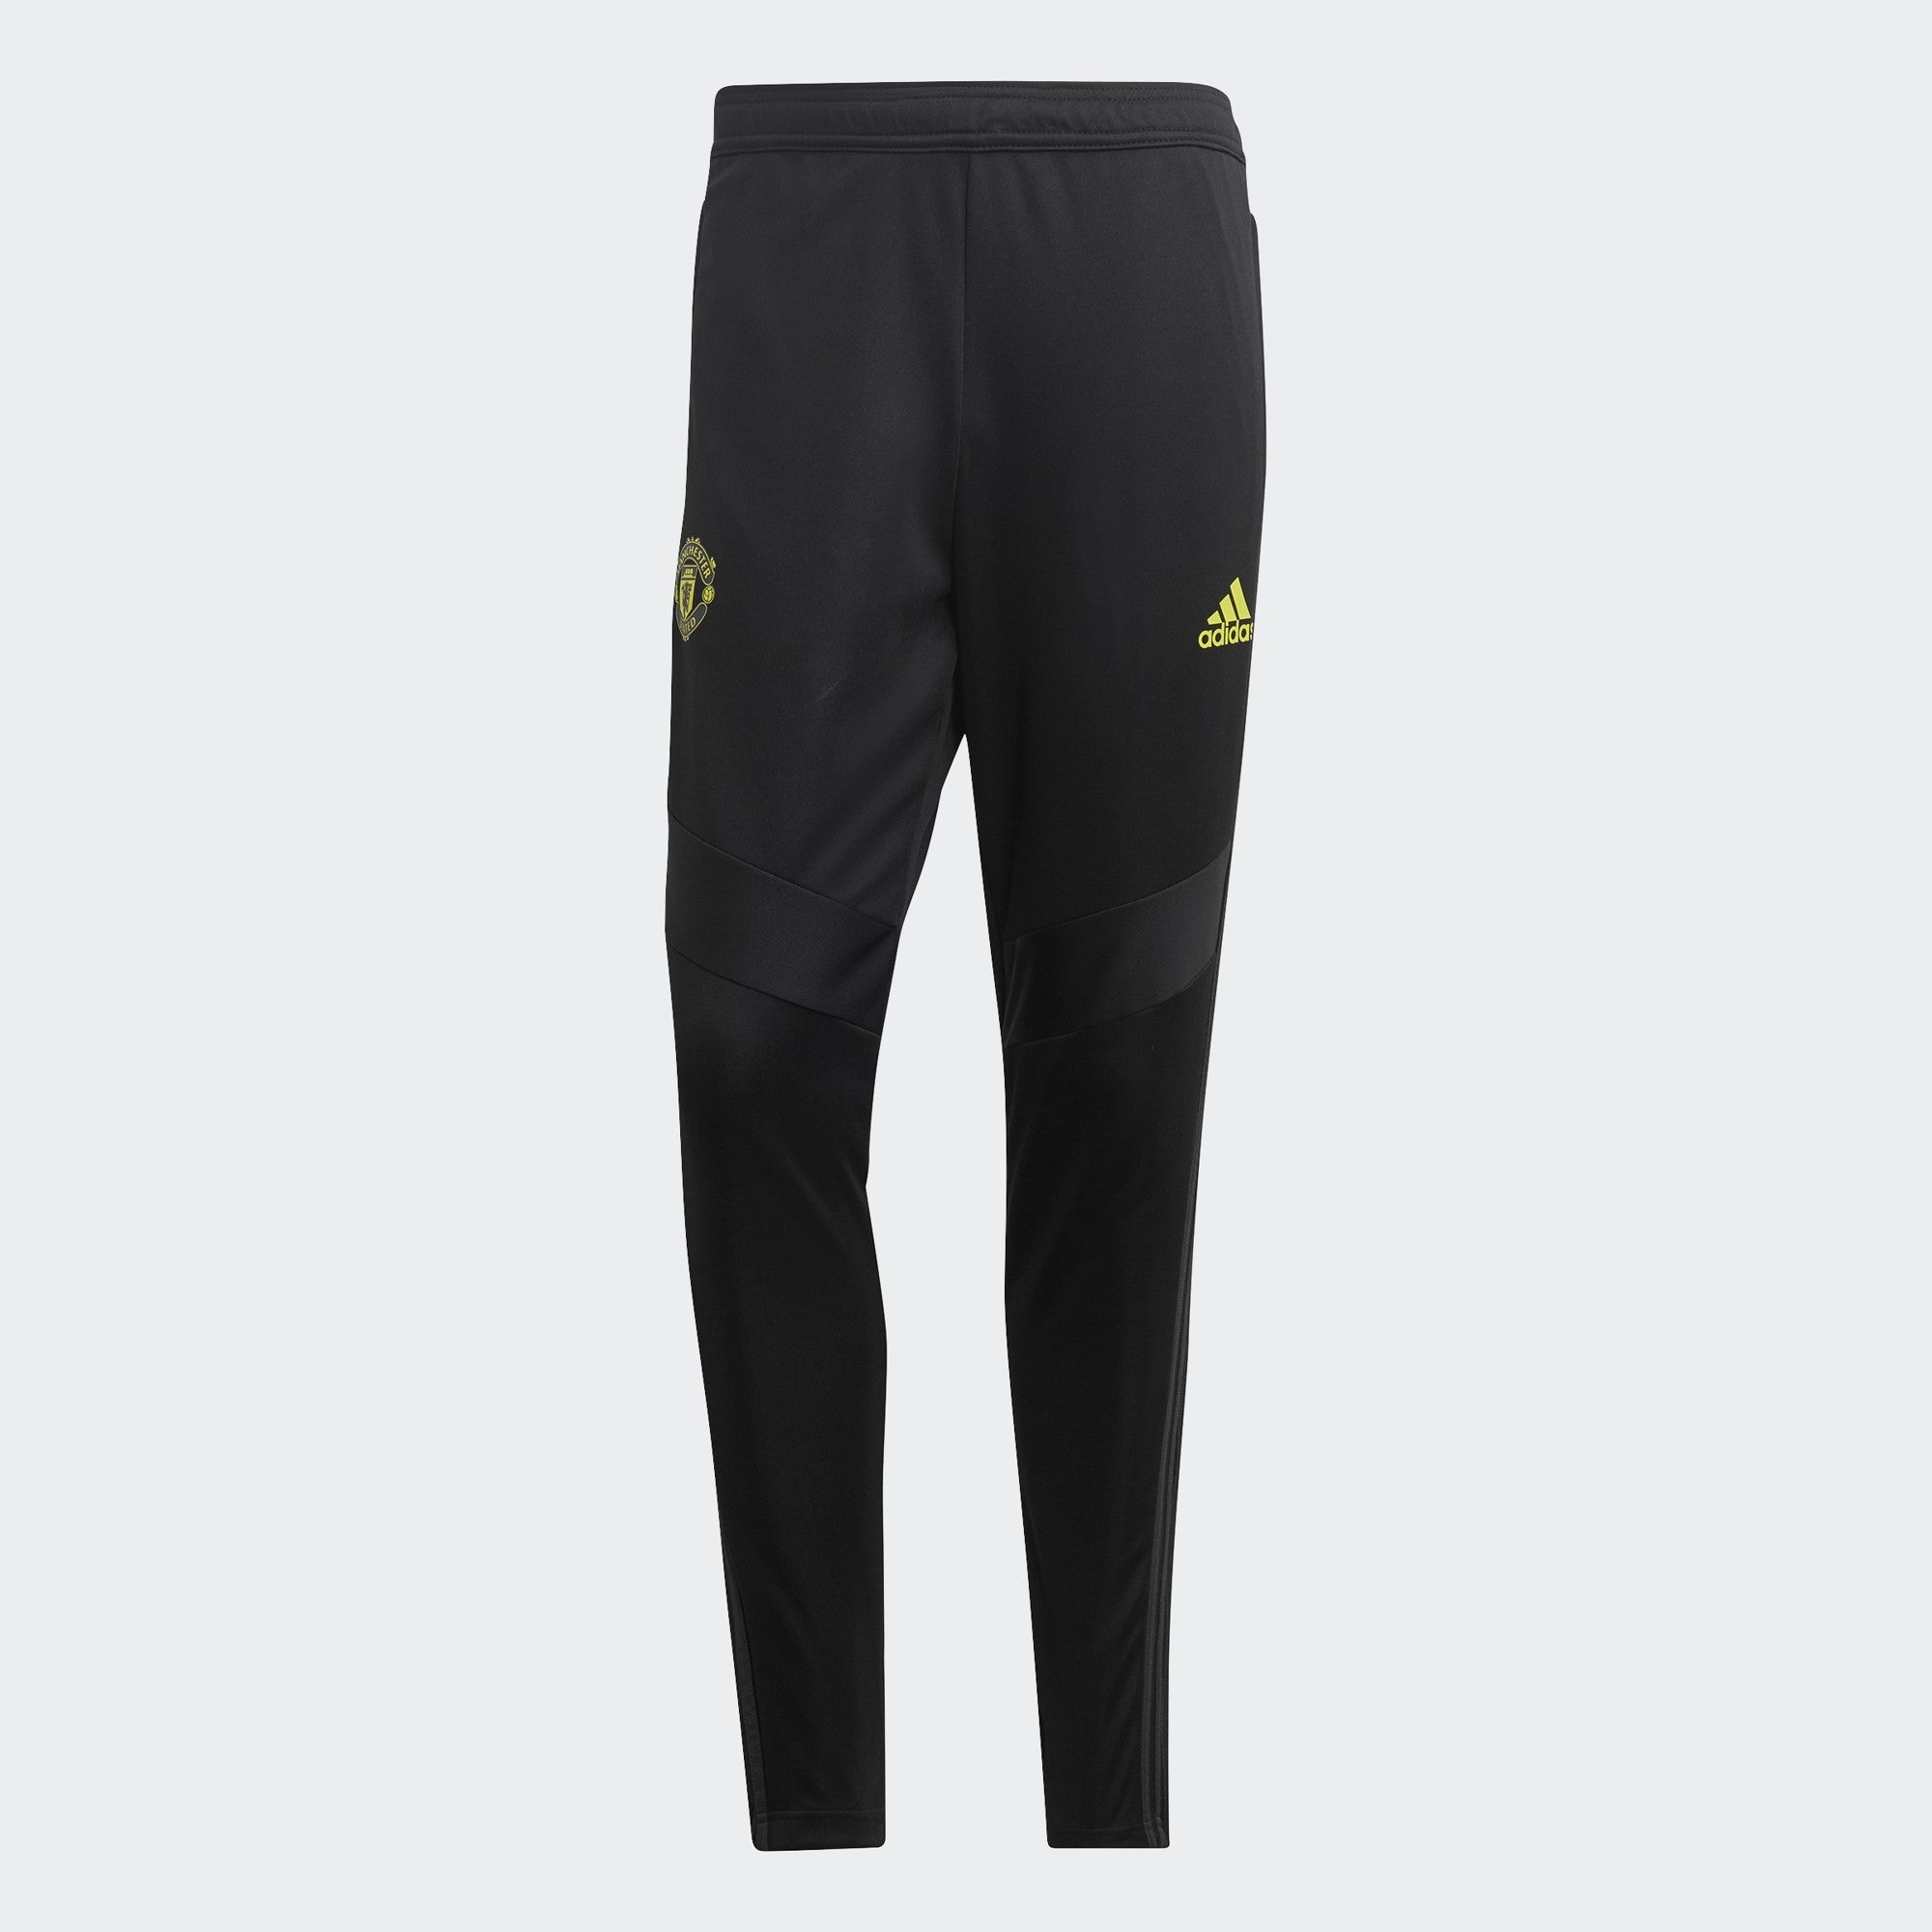 Manchester United Training Pants - Black/Solid Grey